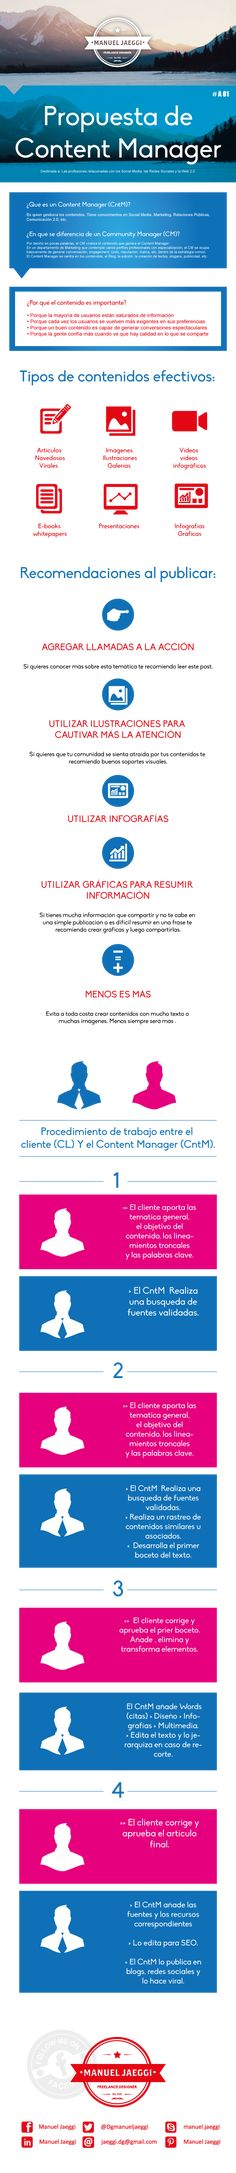 Qué es y qué hace un Content Manager #infografia #infographic #marketing